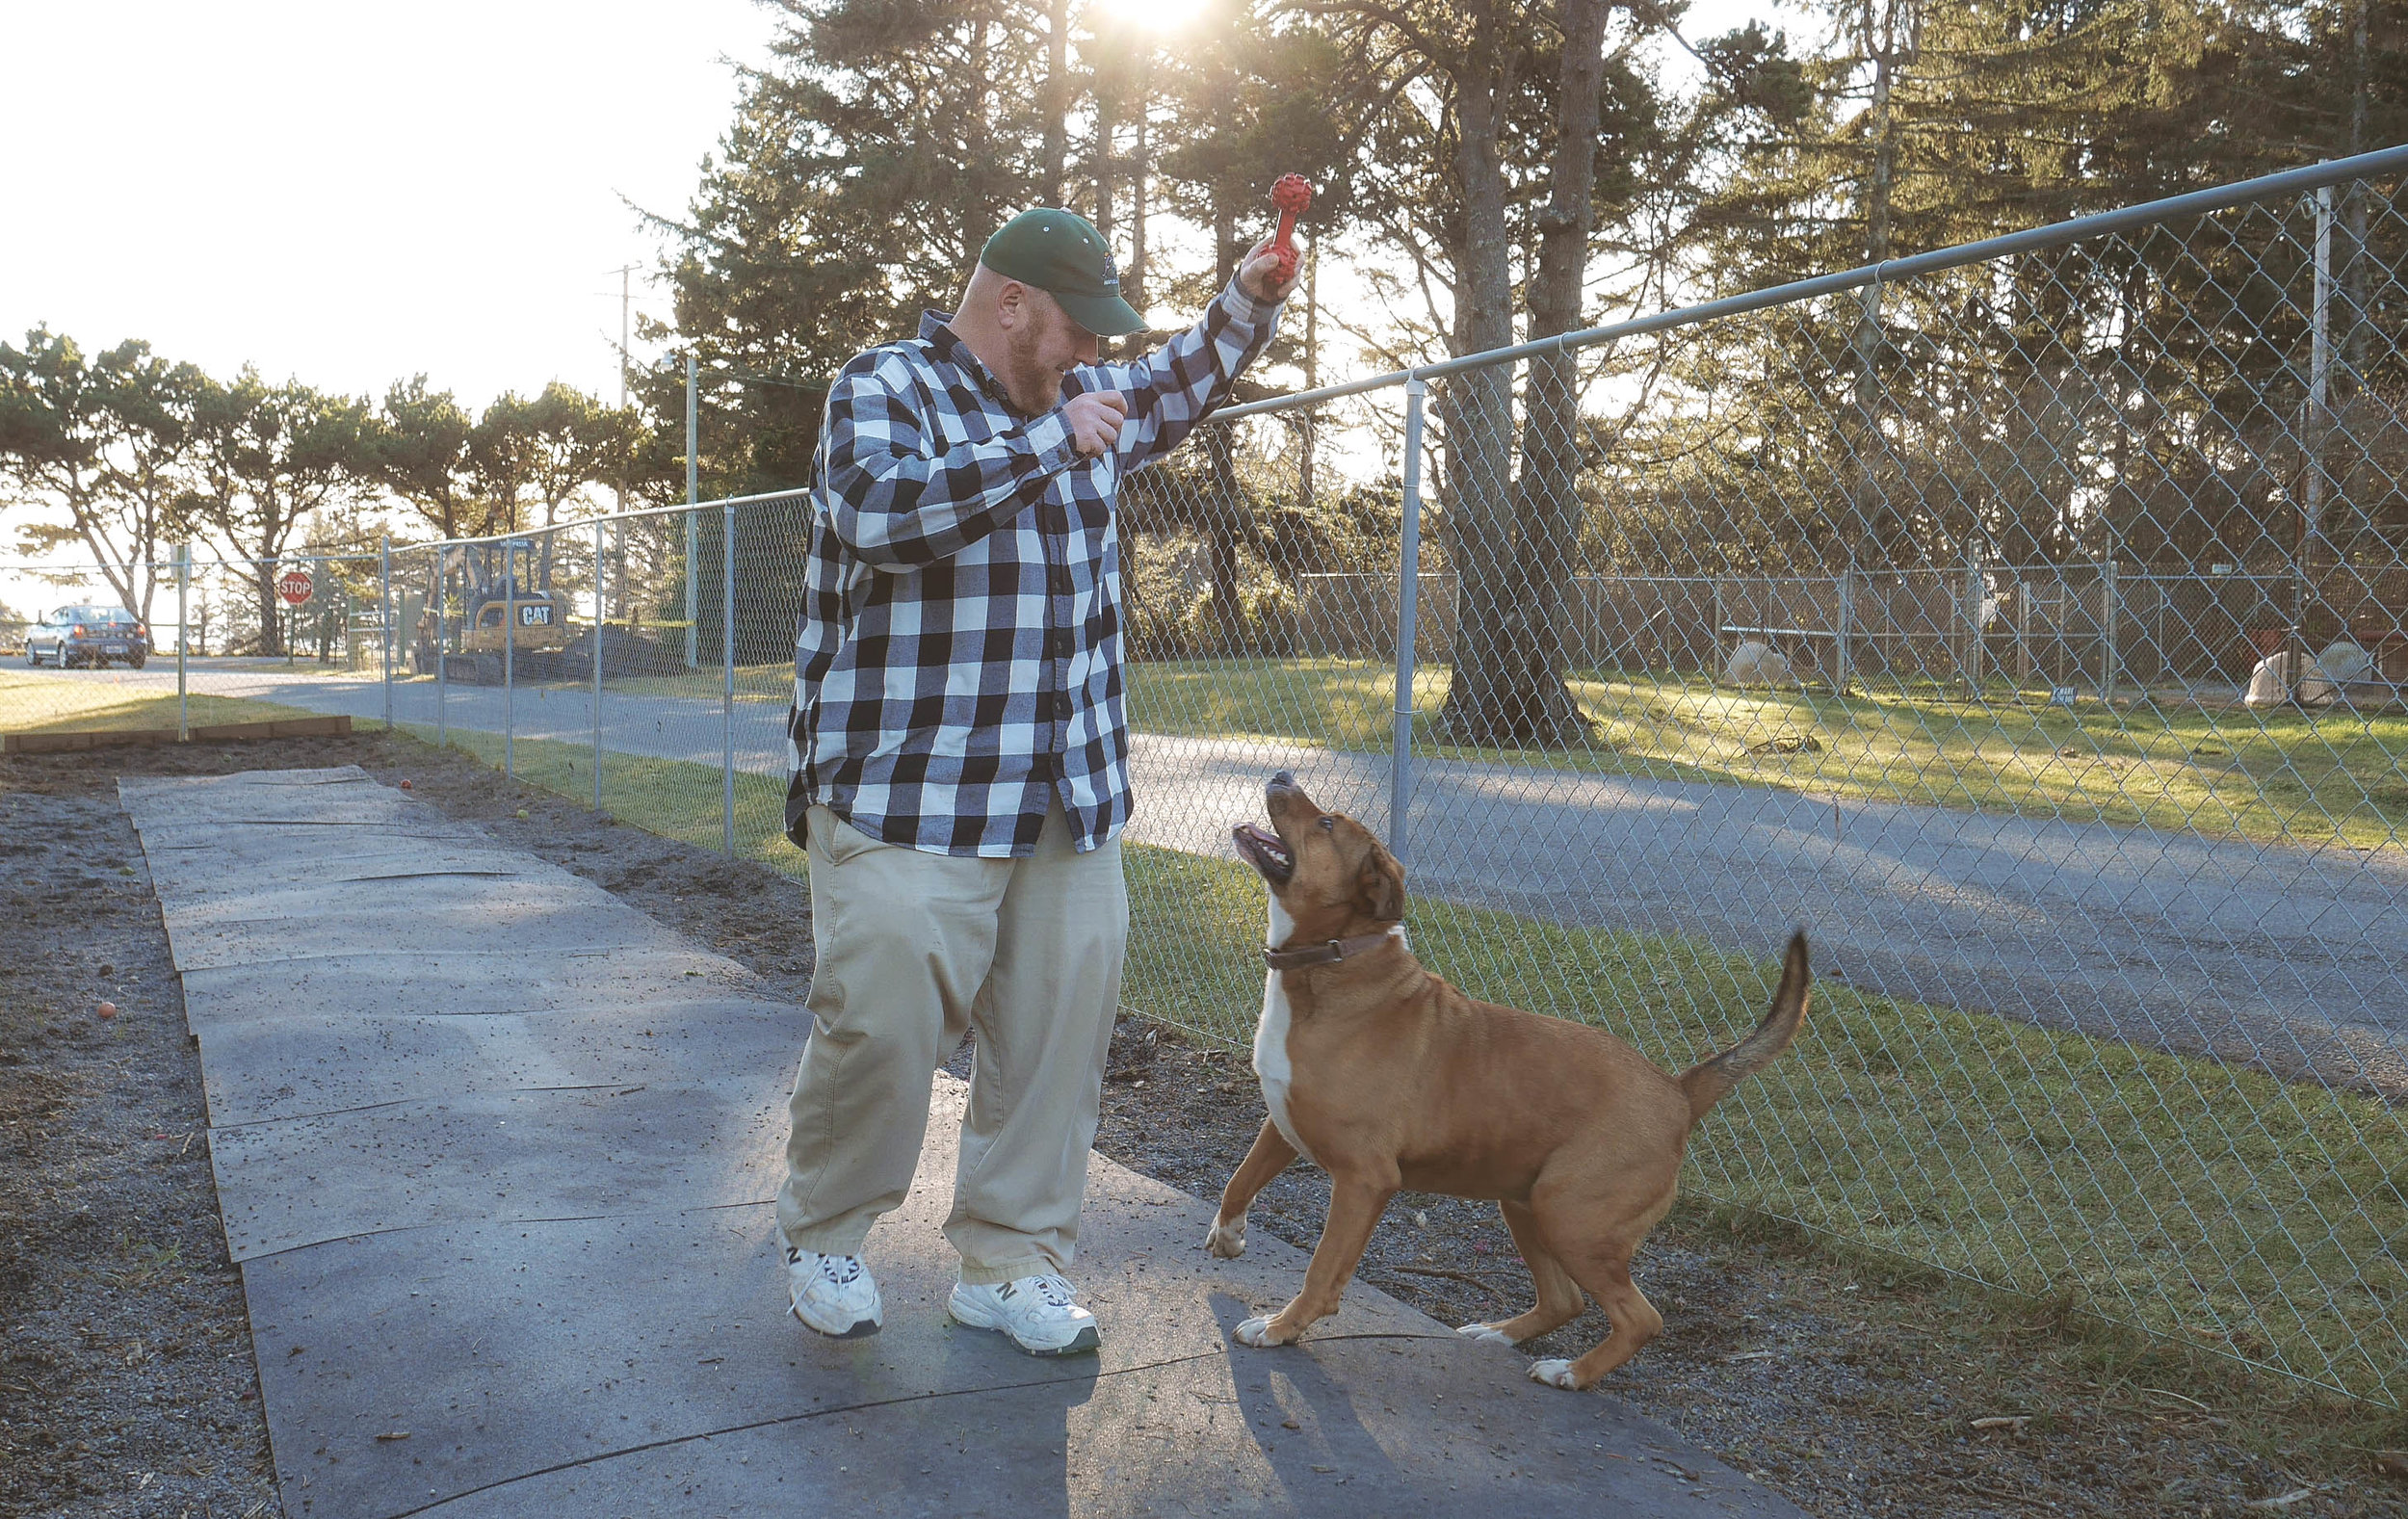 Justin Riggs, Del Norte Animal Control Shelter Manager, plays with Mandy in the dog run made possible by community donations and volunteers.